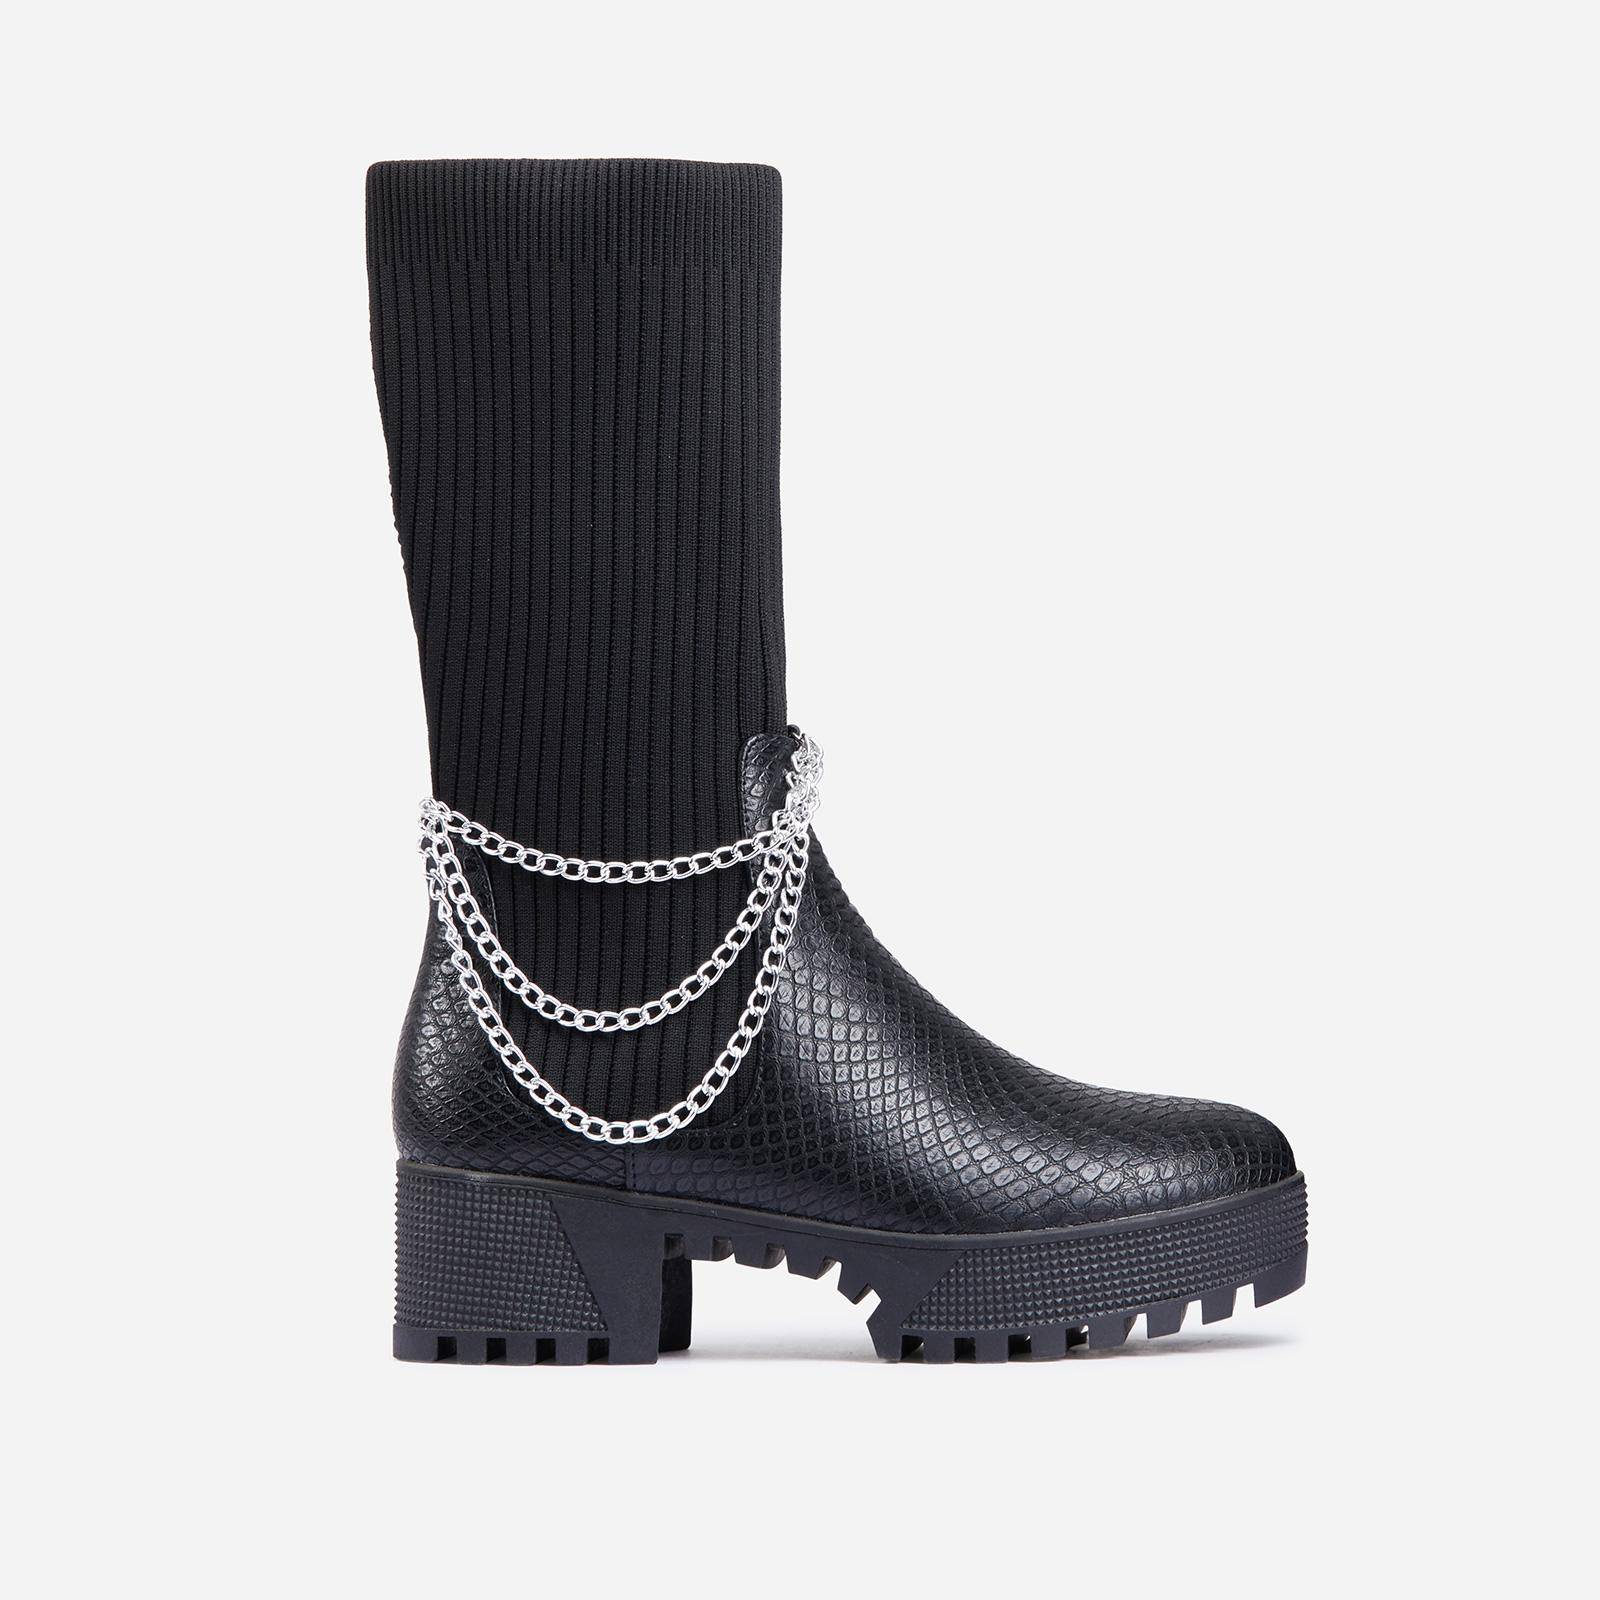 EGO Hint Chain Detail Ribbed Mid Calf Chunky Sole Ankle Bike Boot In Black Snake Print Faux Leather, Black  - female - Size: 9